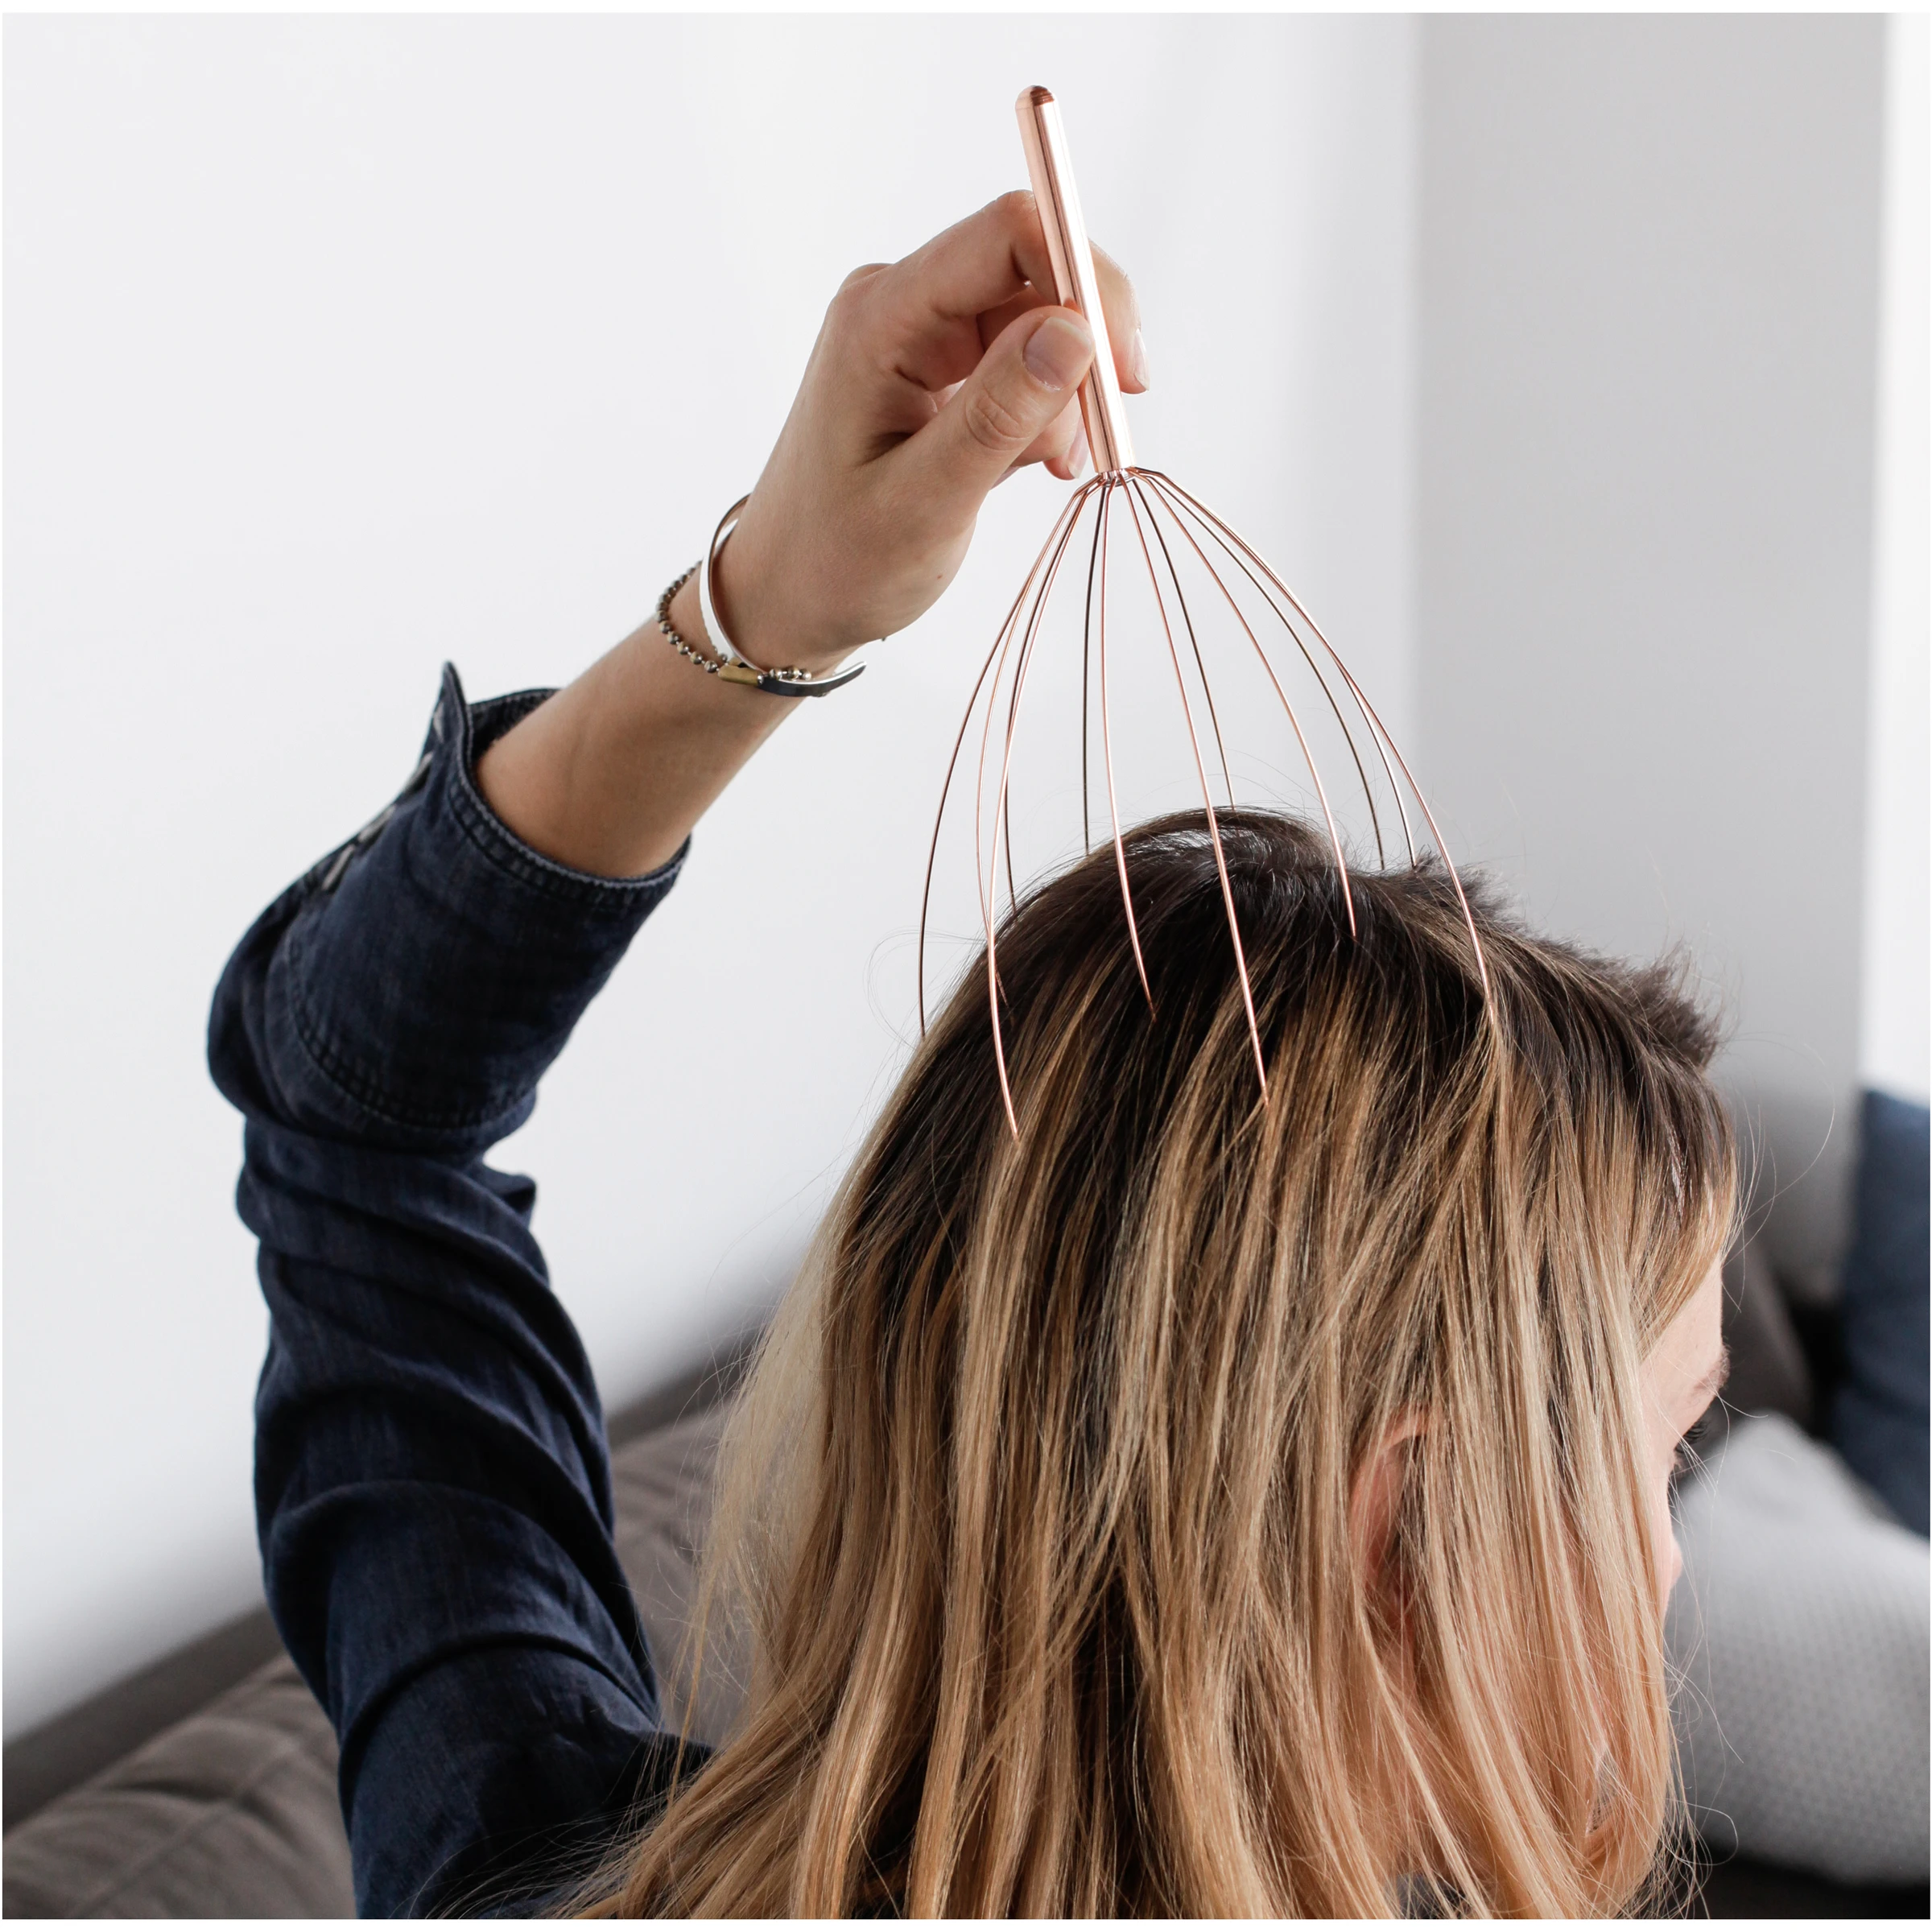 Head Massager in action